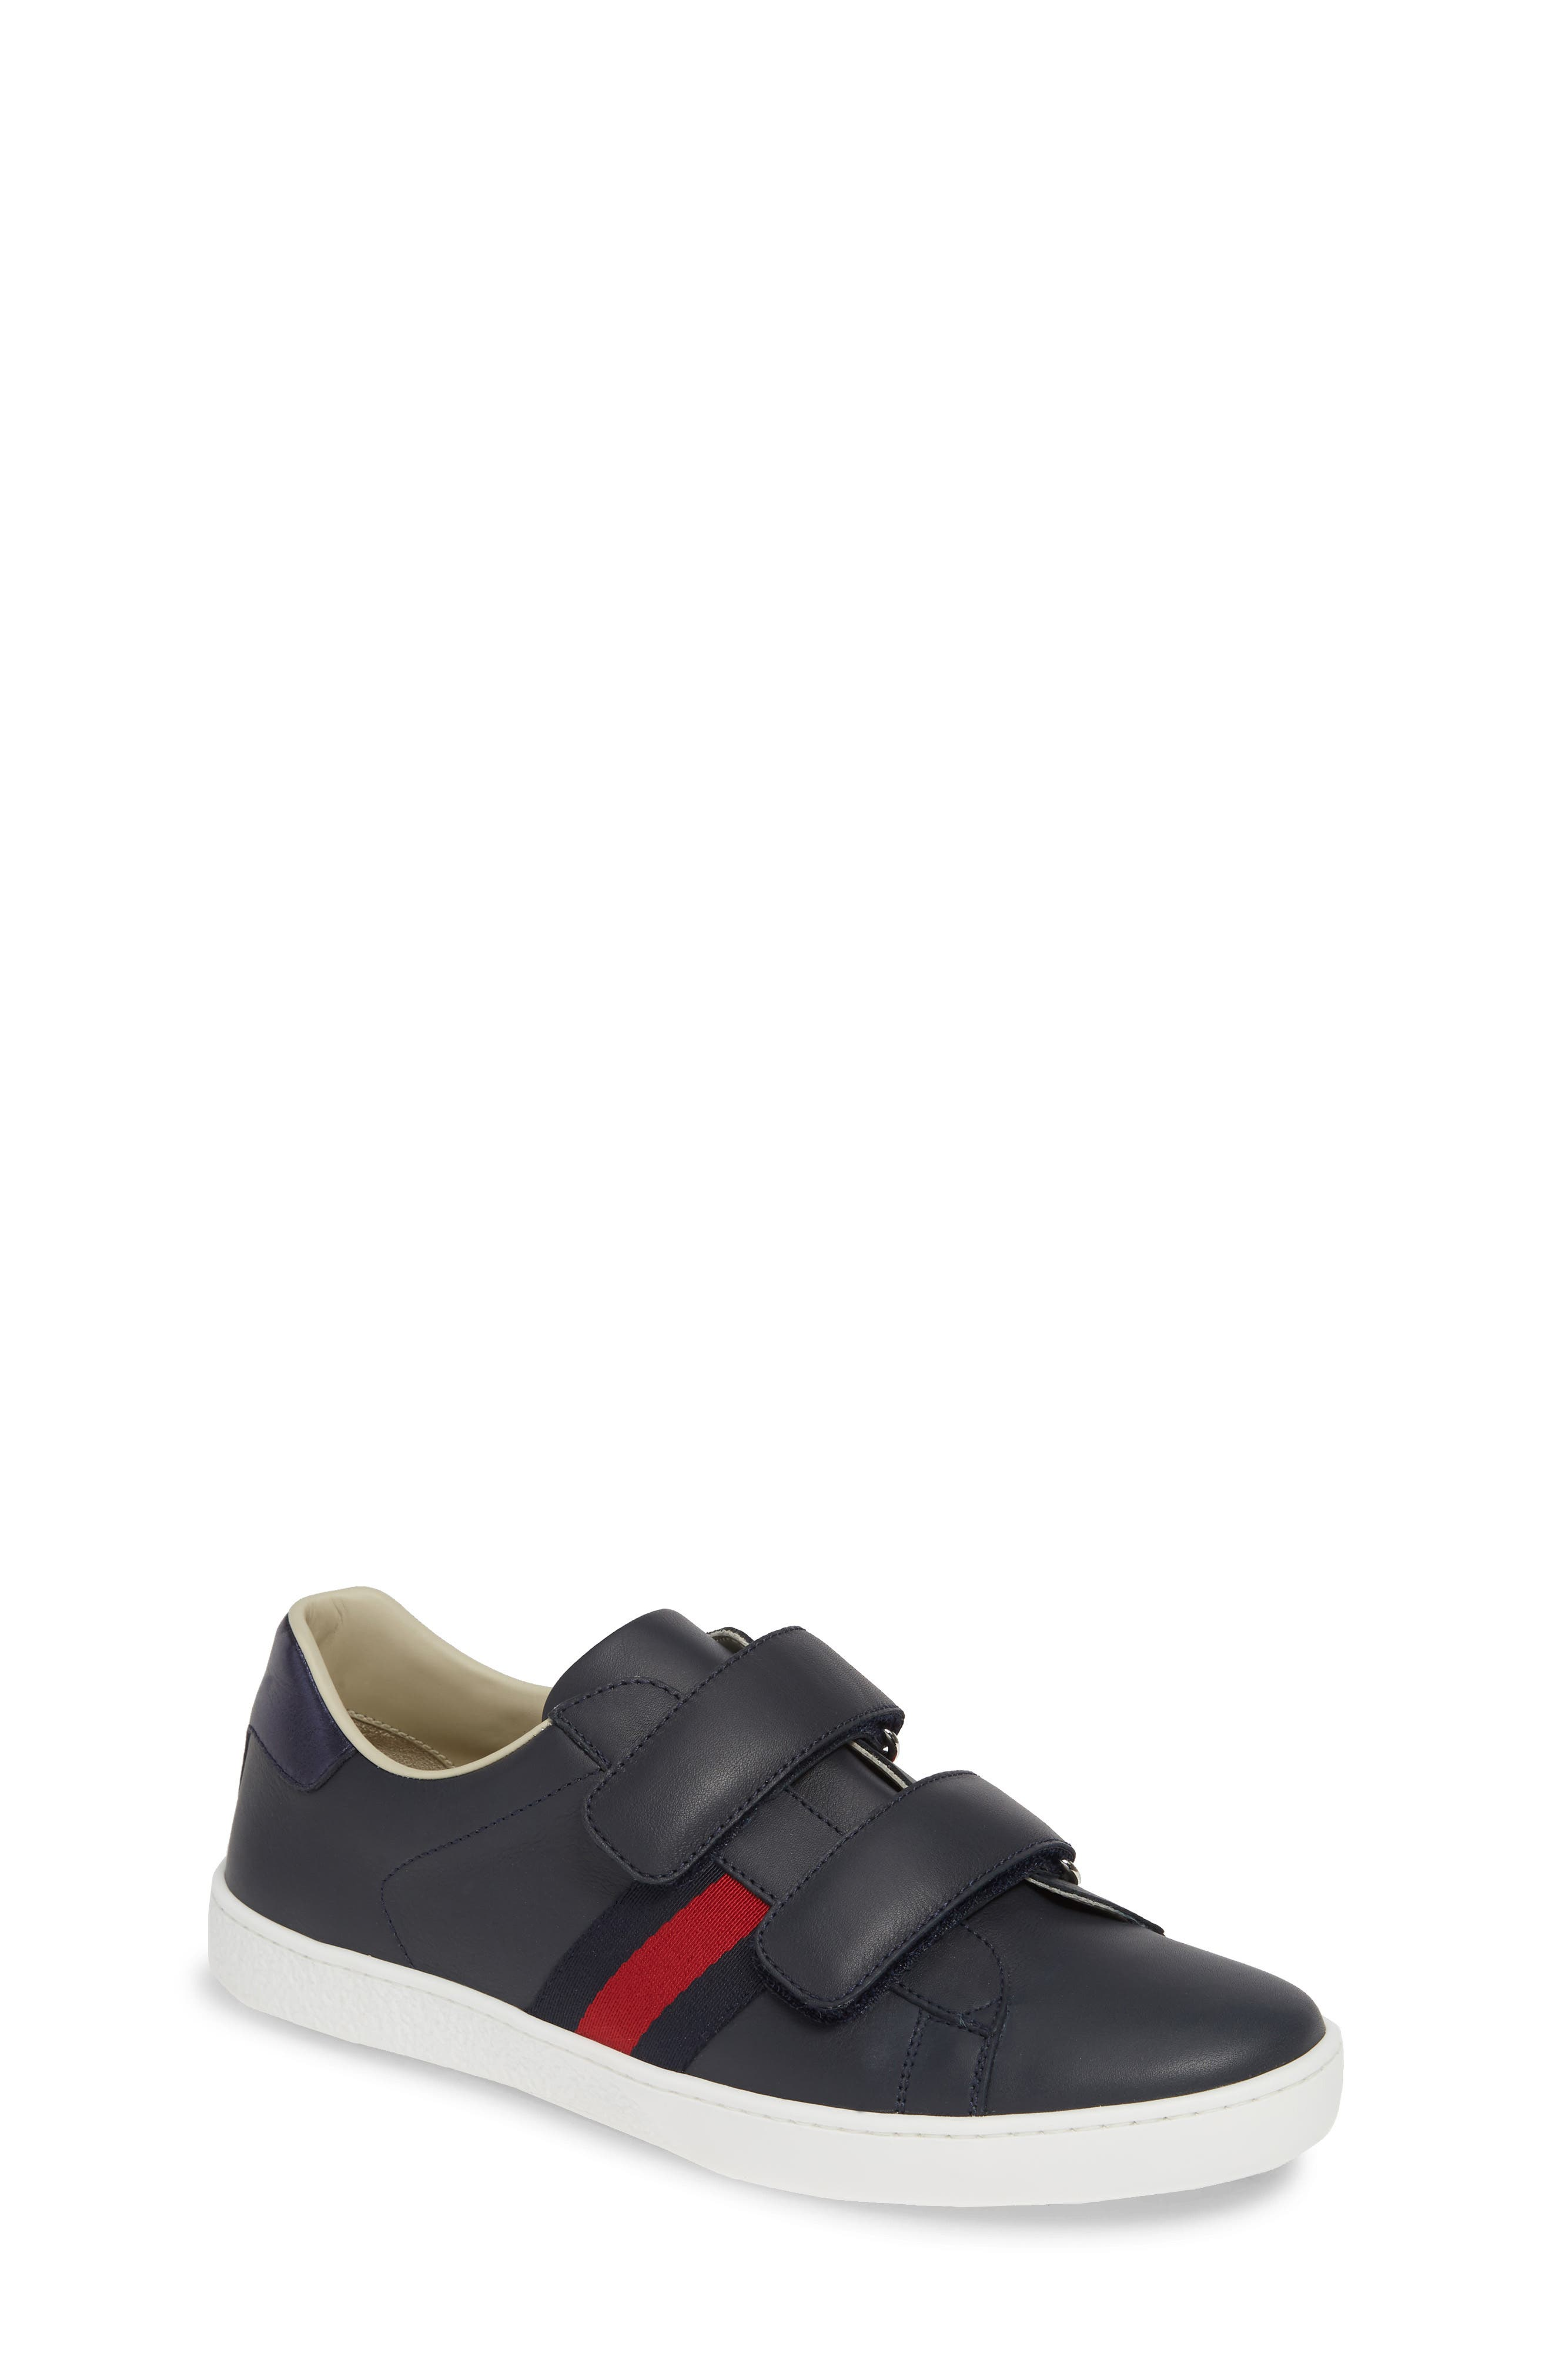 Toddler Gucci New Ace Sneaker Size 25US  34EU  Blue